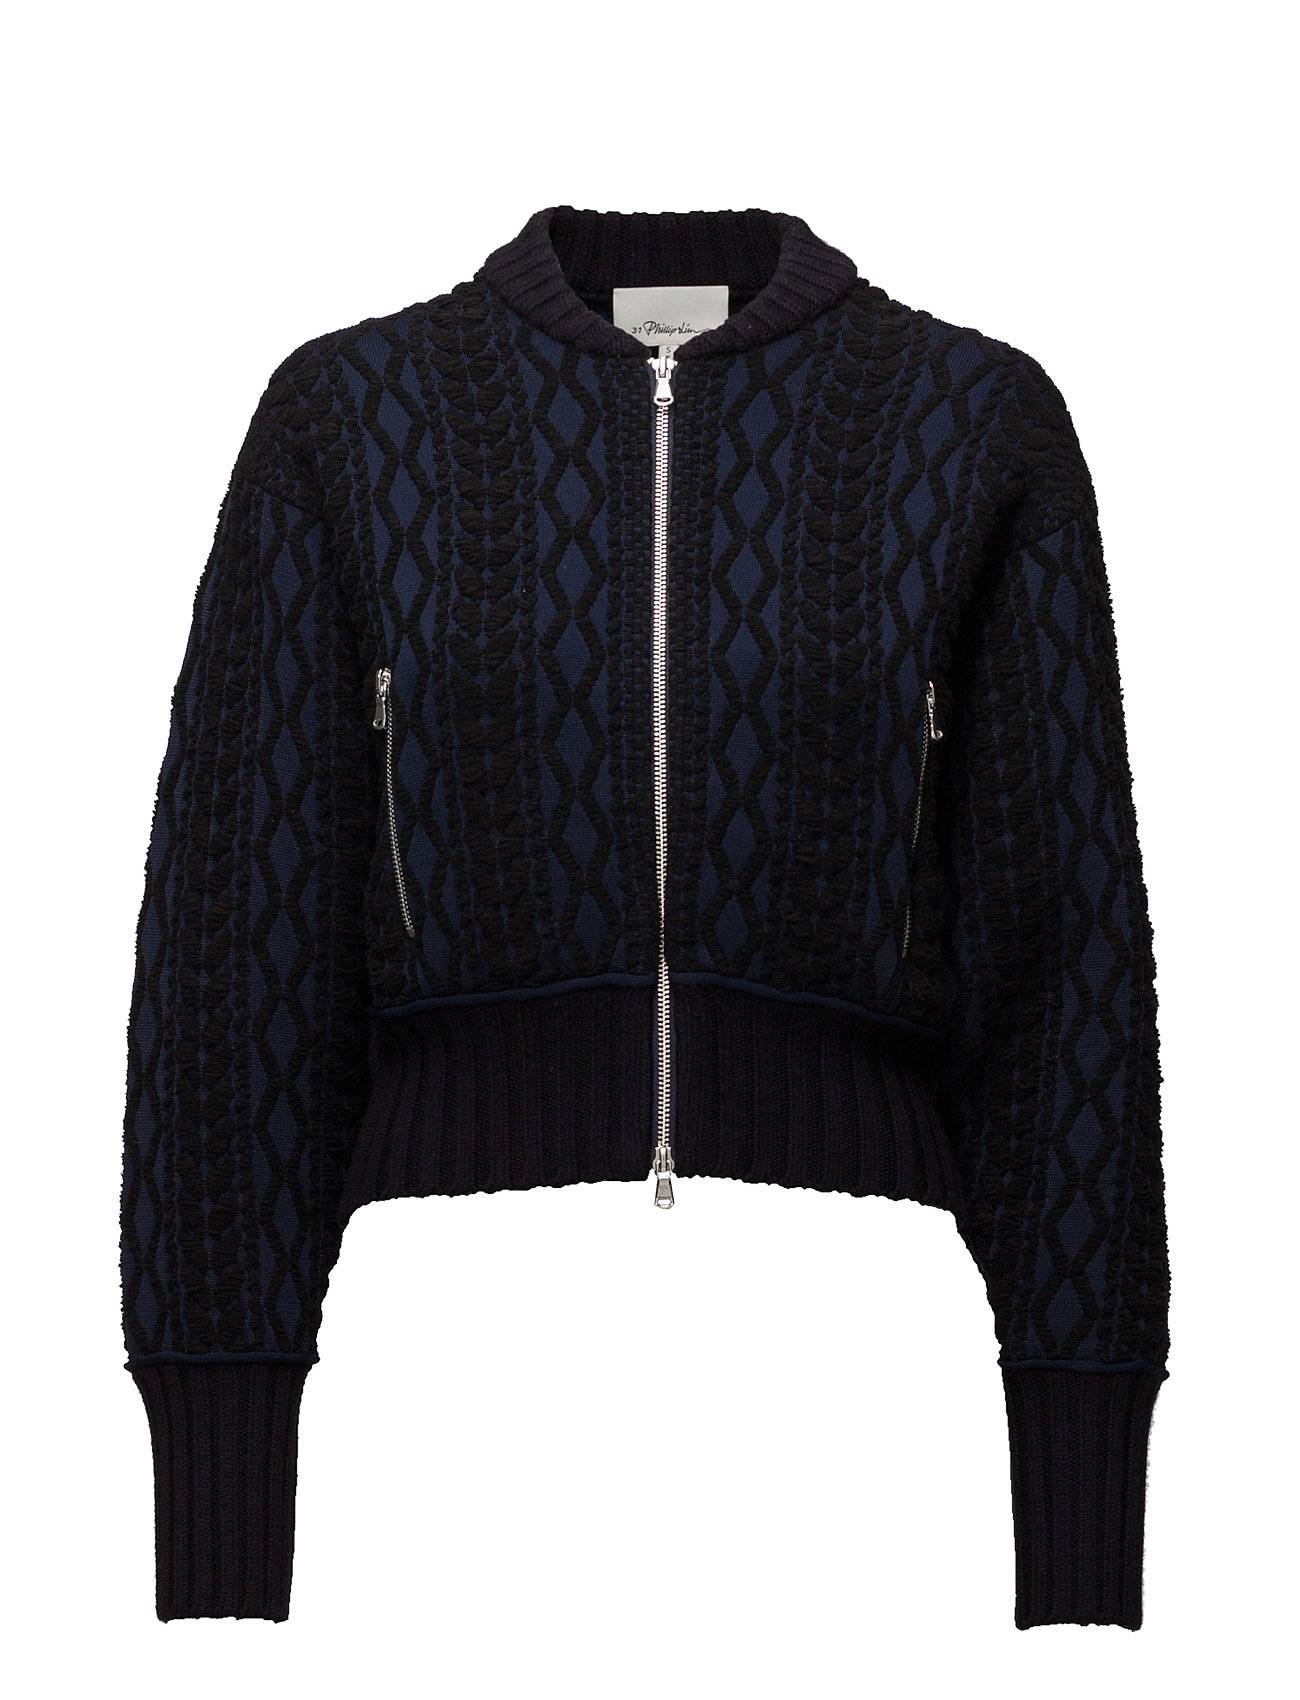 3.1 Phillip Lim Woven Mock Cable Bomber